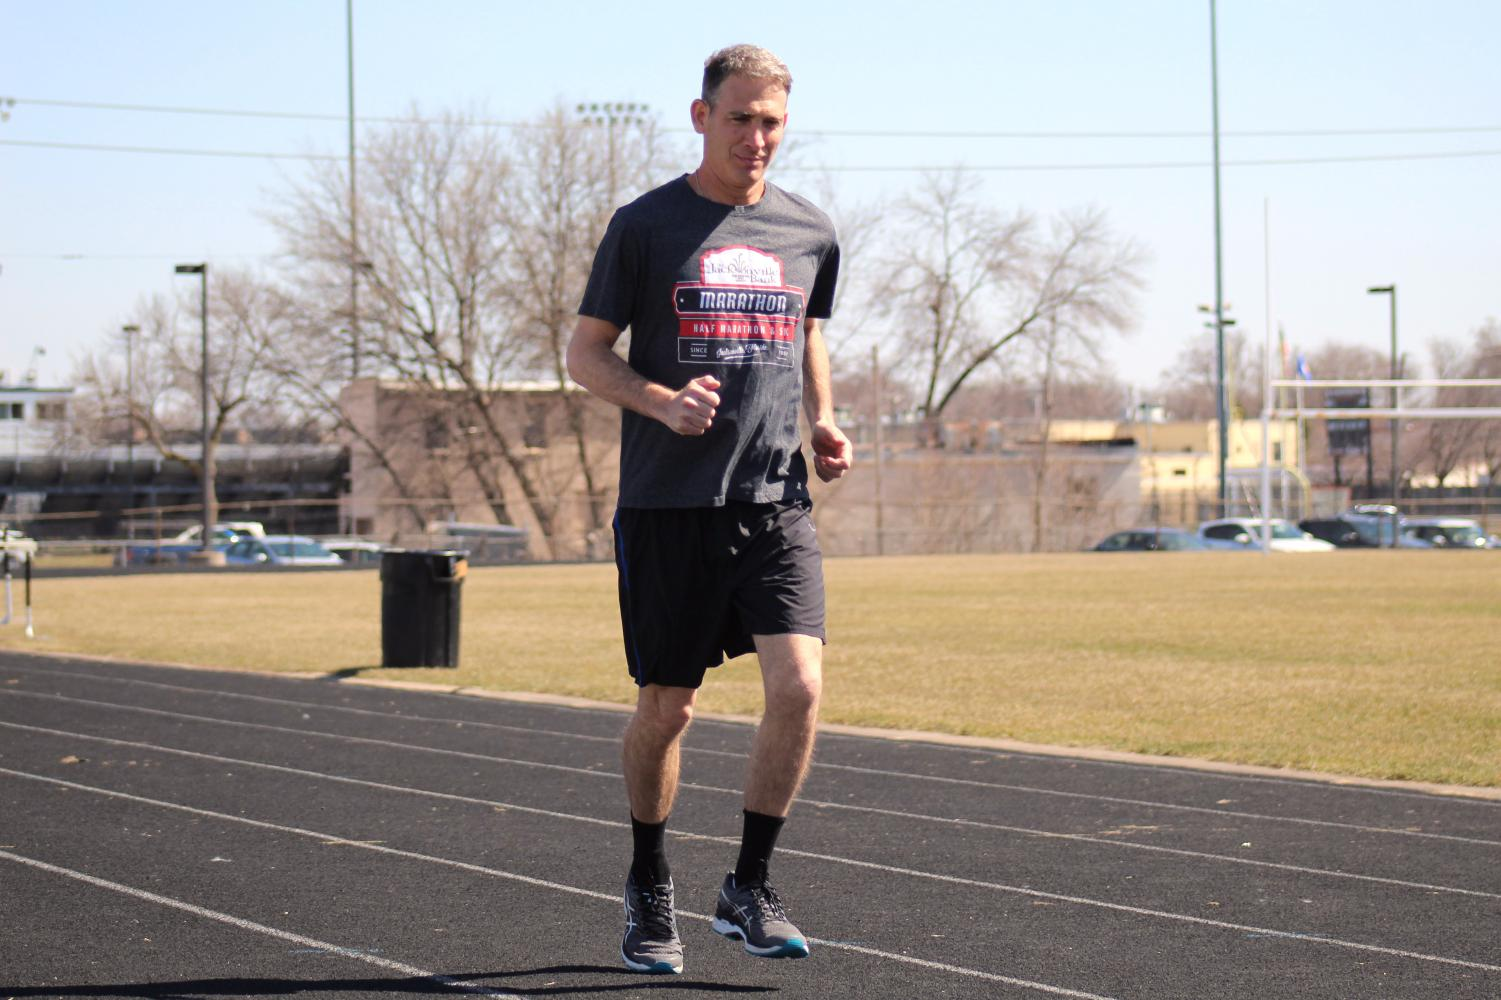 History teacher Jeffrey Cohen trains at the St. Louis Park High School track after racing the Boston Marathon April 16. He ran a time of 3:21:44.